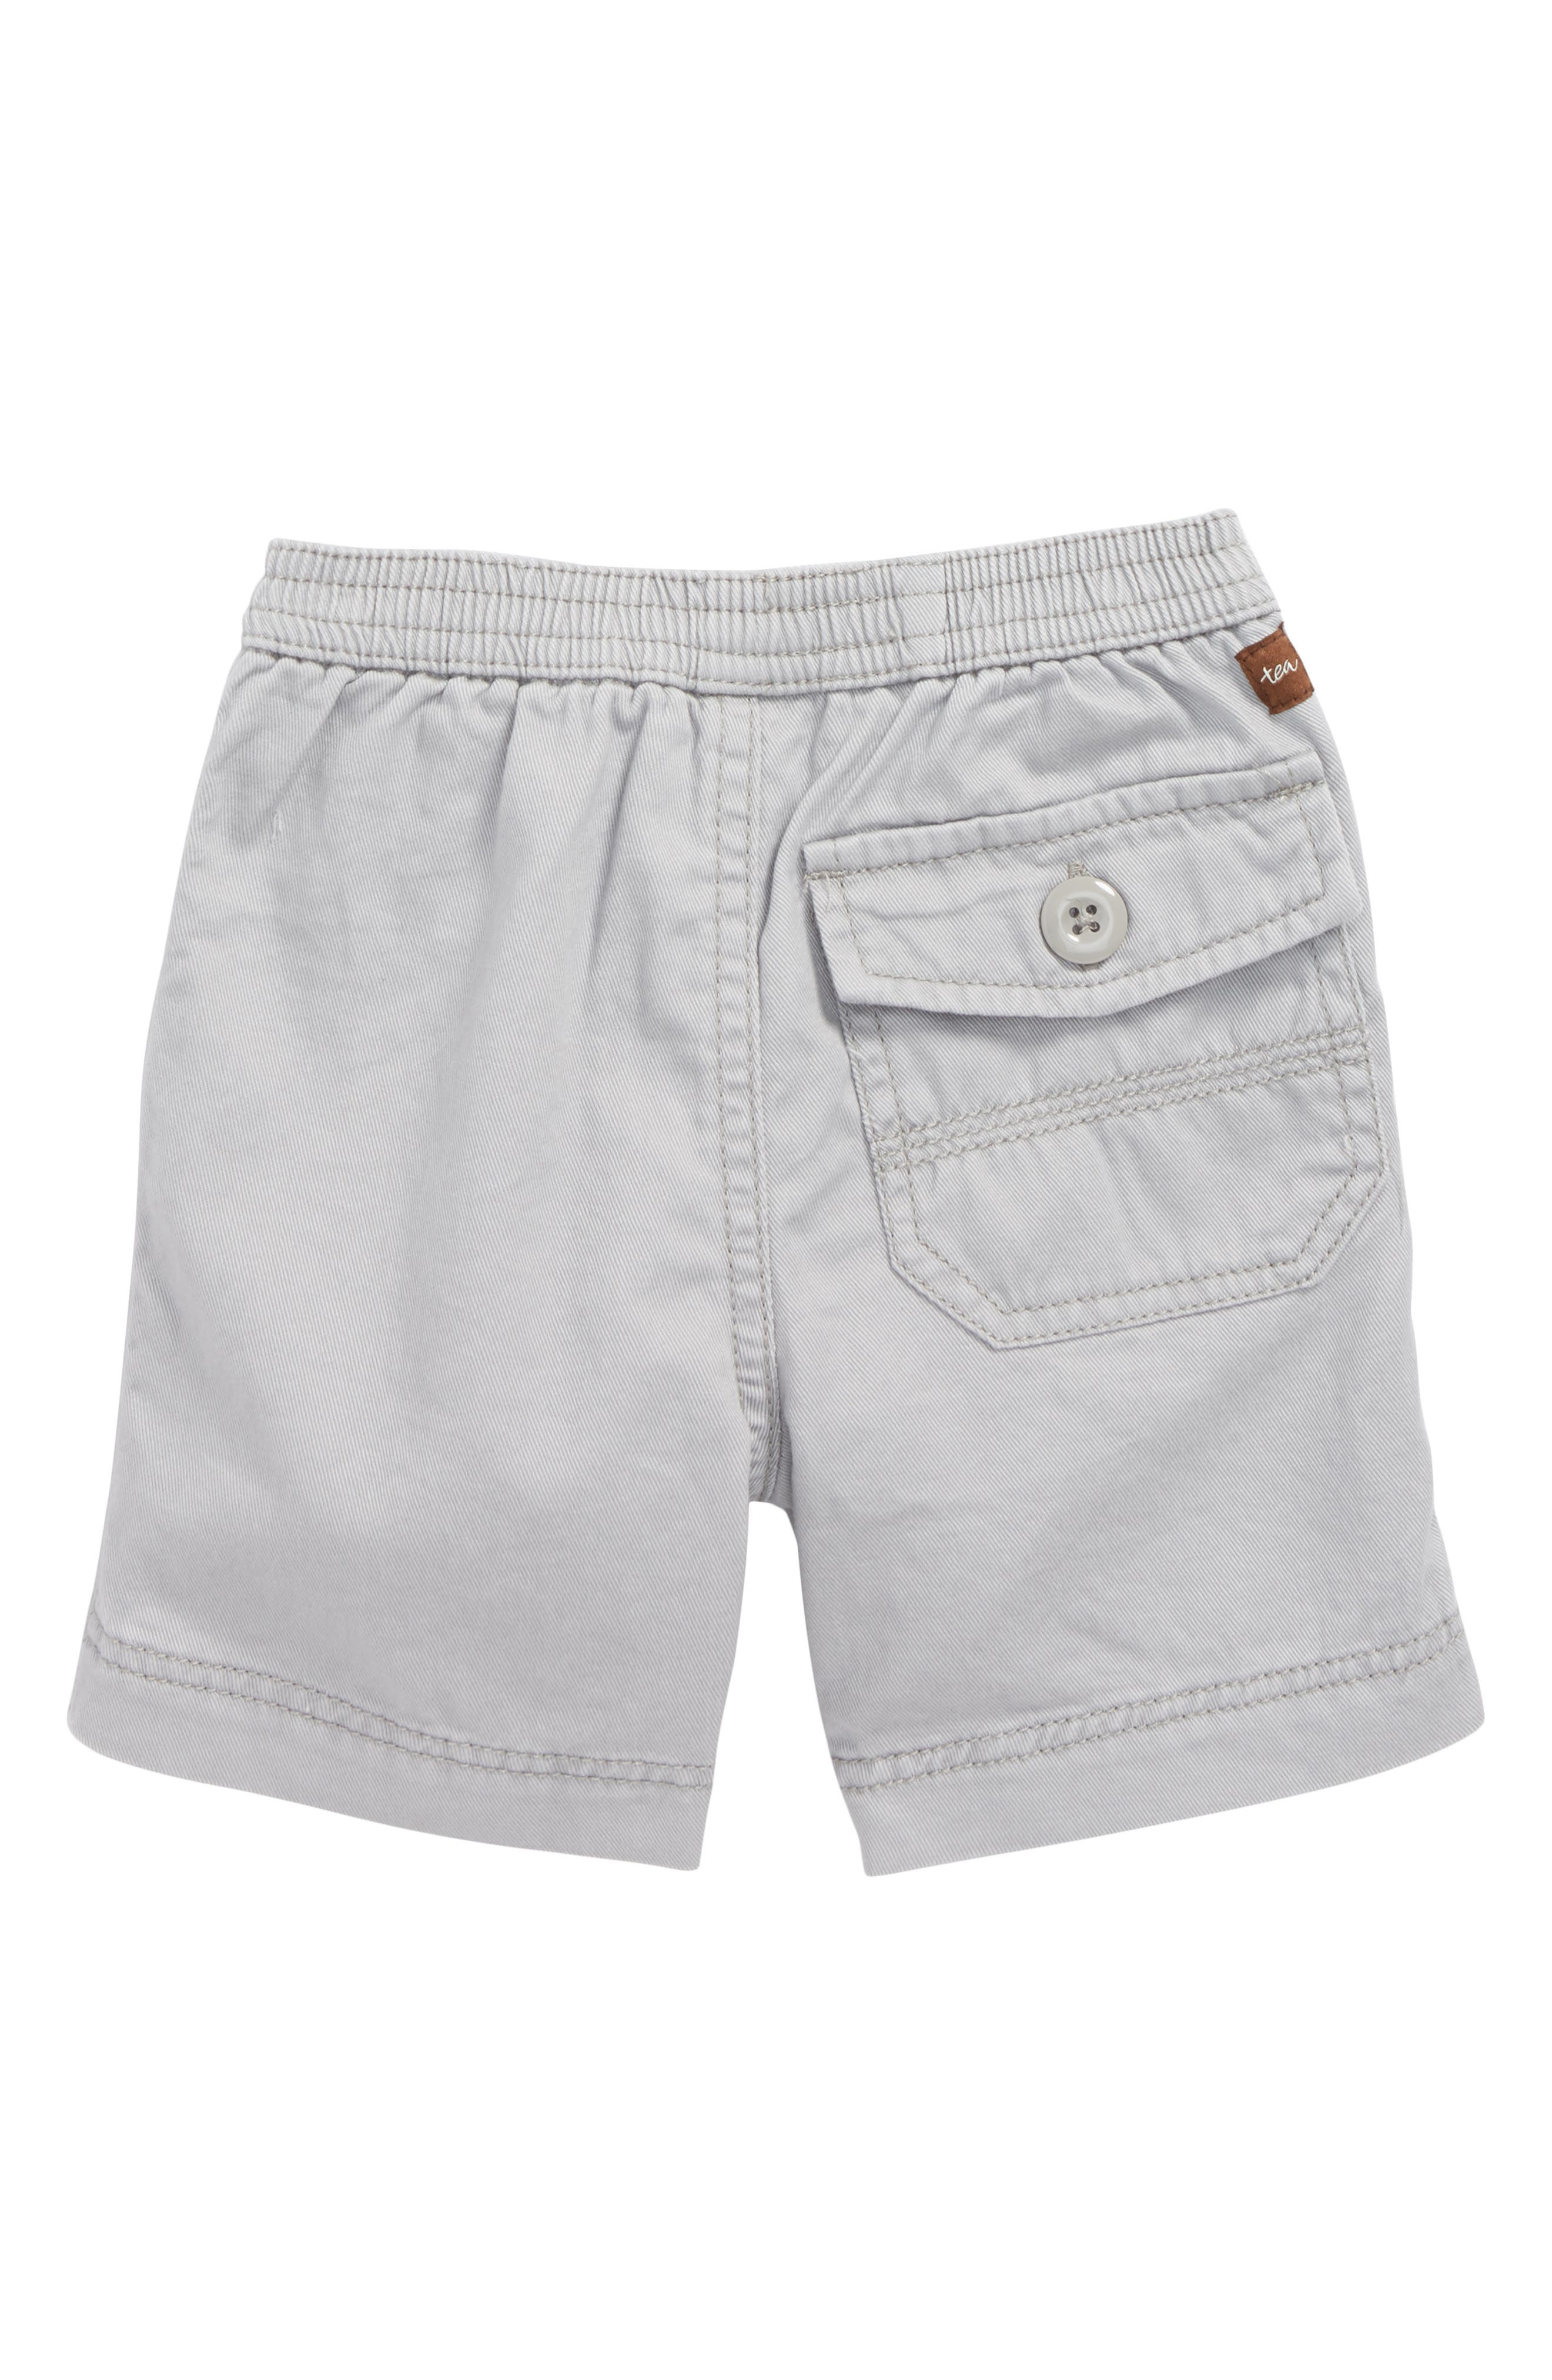 Easy Does It Twill Shorts,                             Alternate thumbnail 2, color,                             052